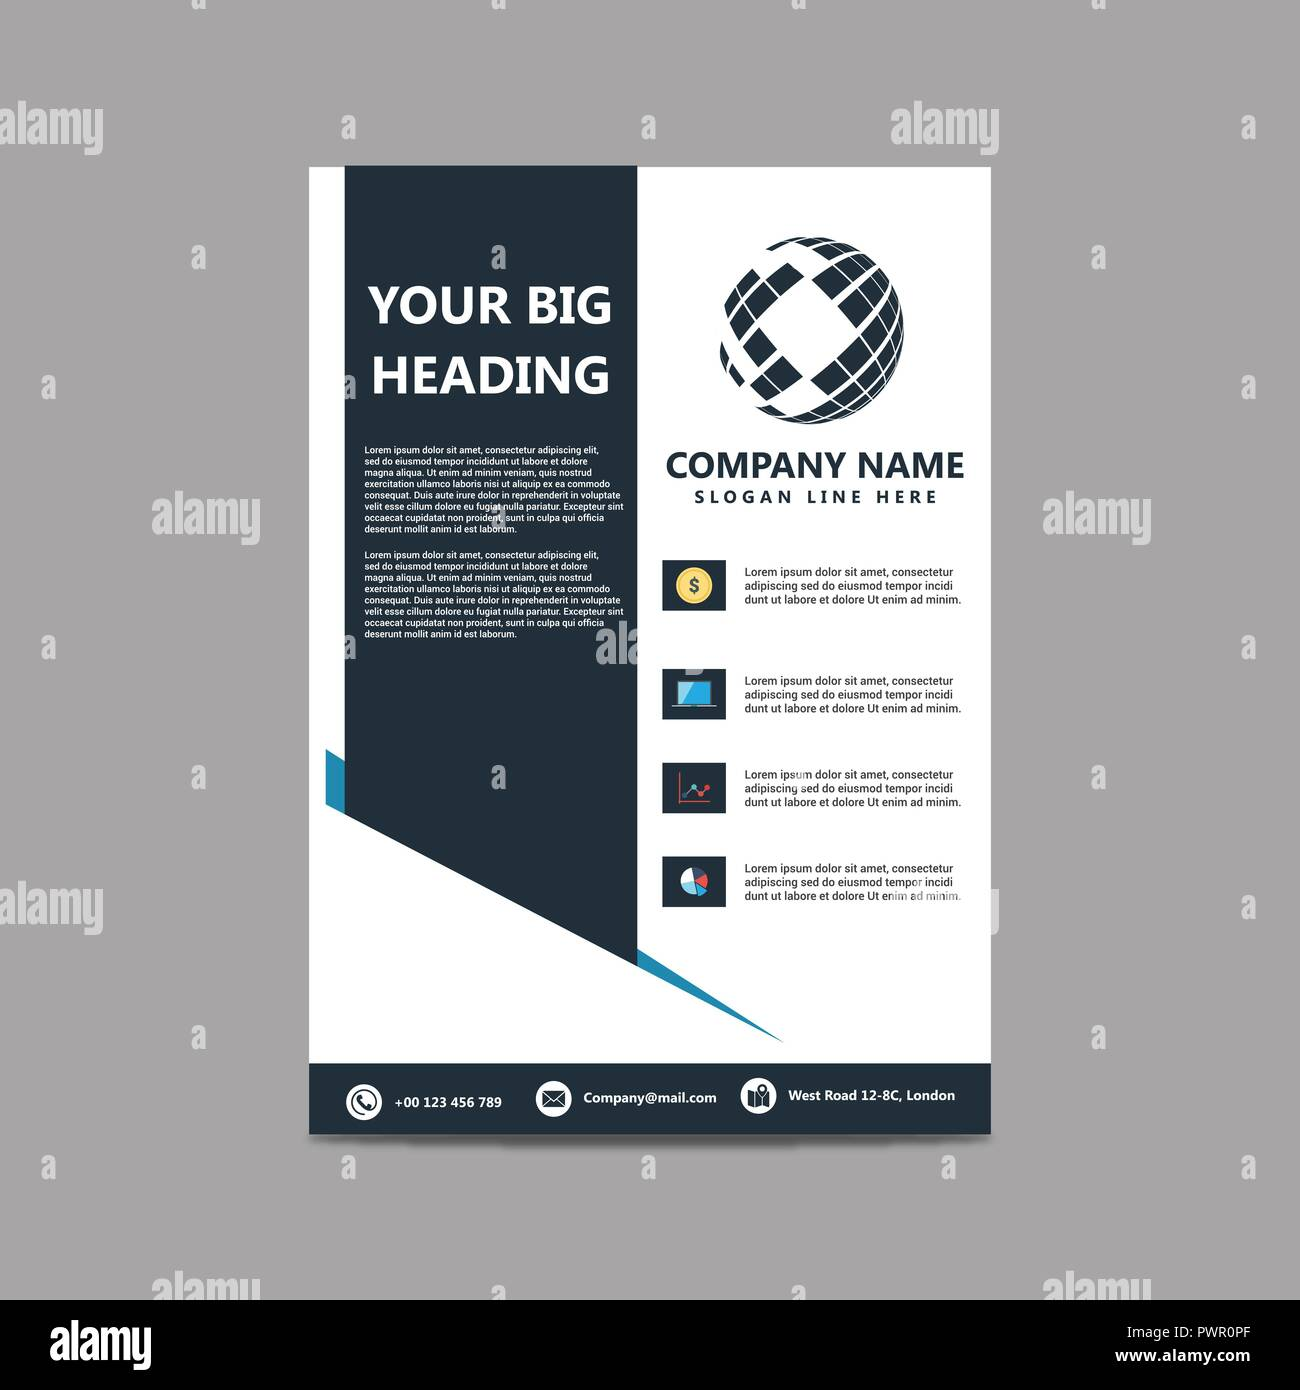 Company Brochure Design With Company Name And Background Design Vector Stock Vector Image Art Alamy